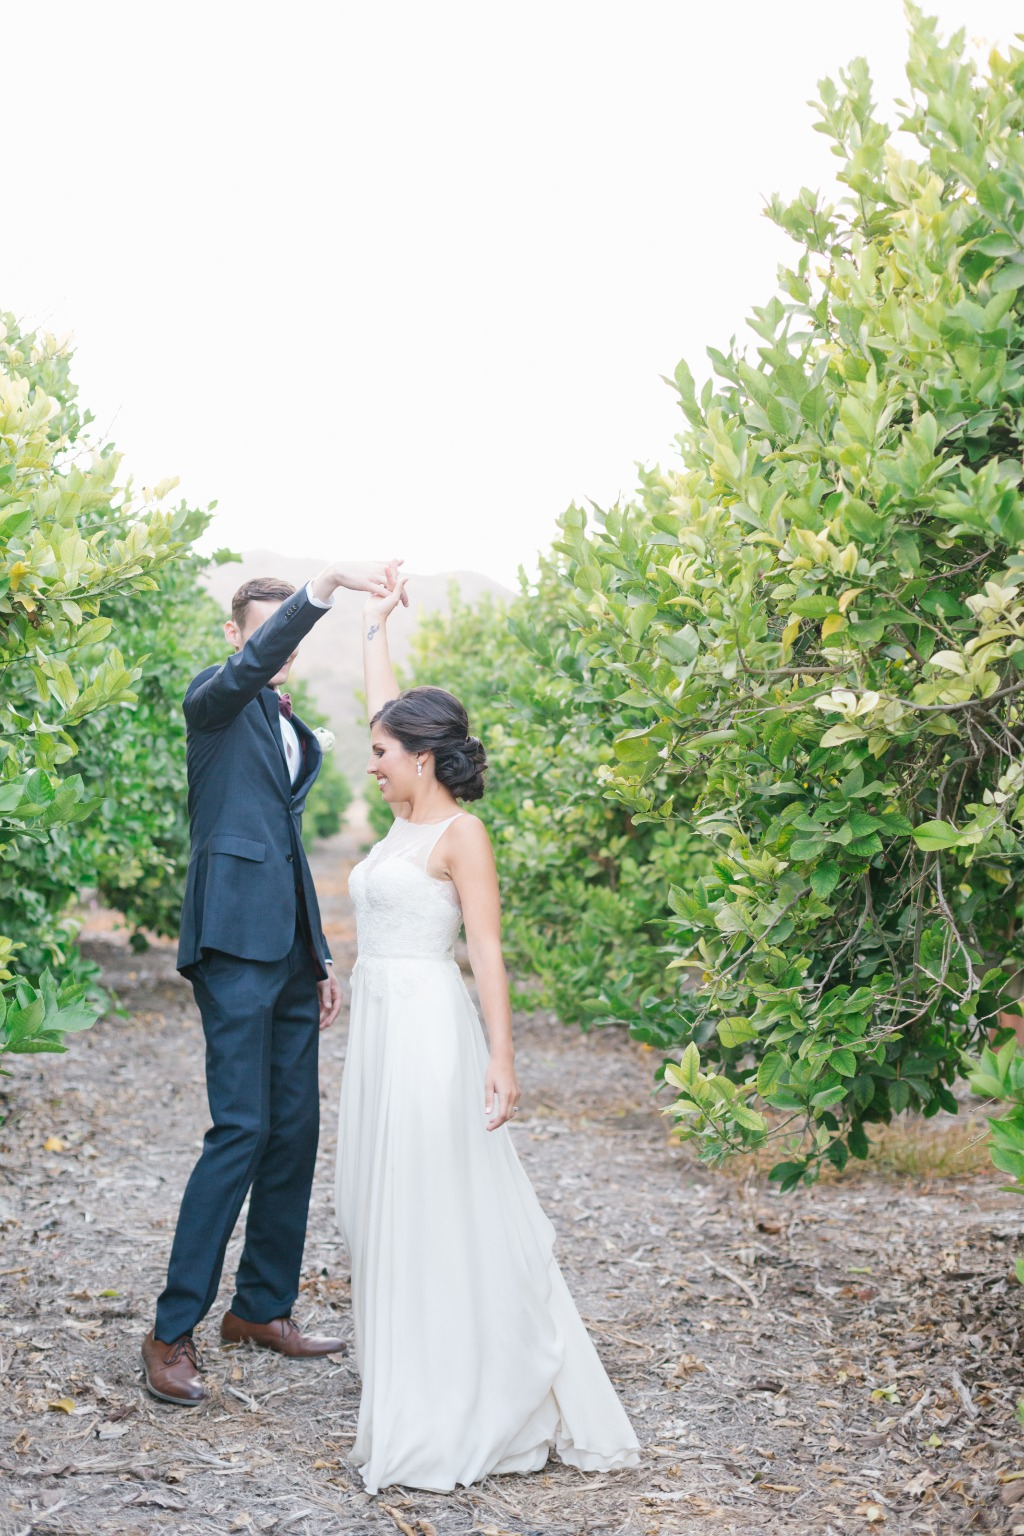 Nothing like a little dancing in the orchard post-ceremony!